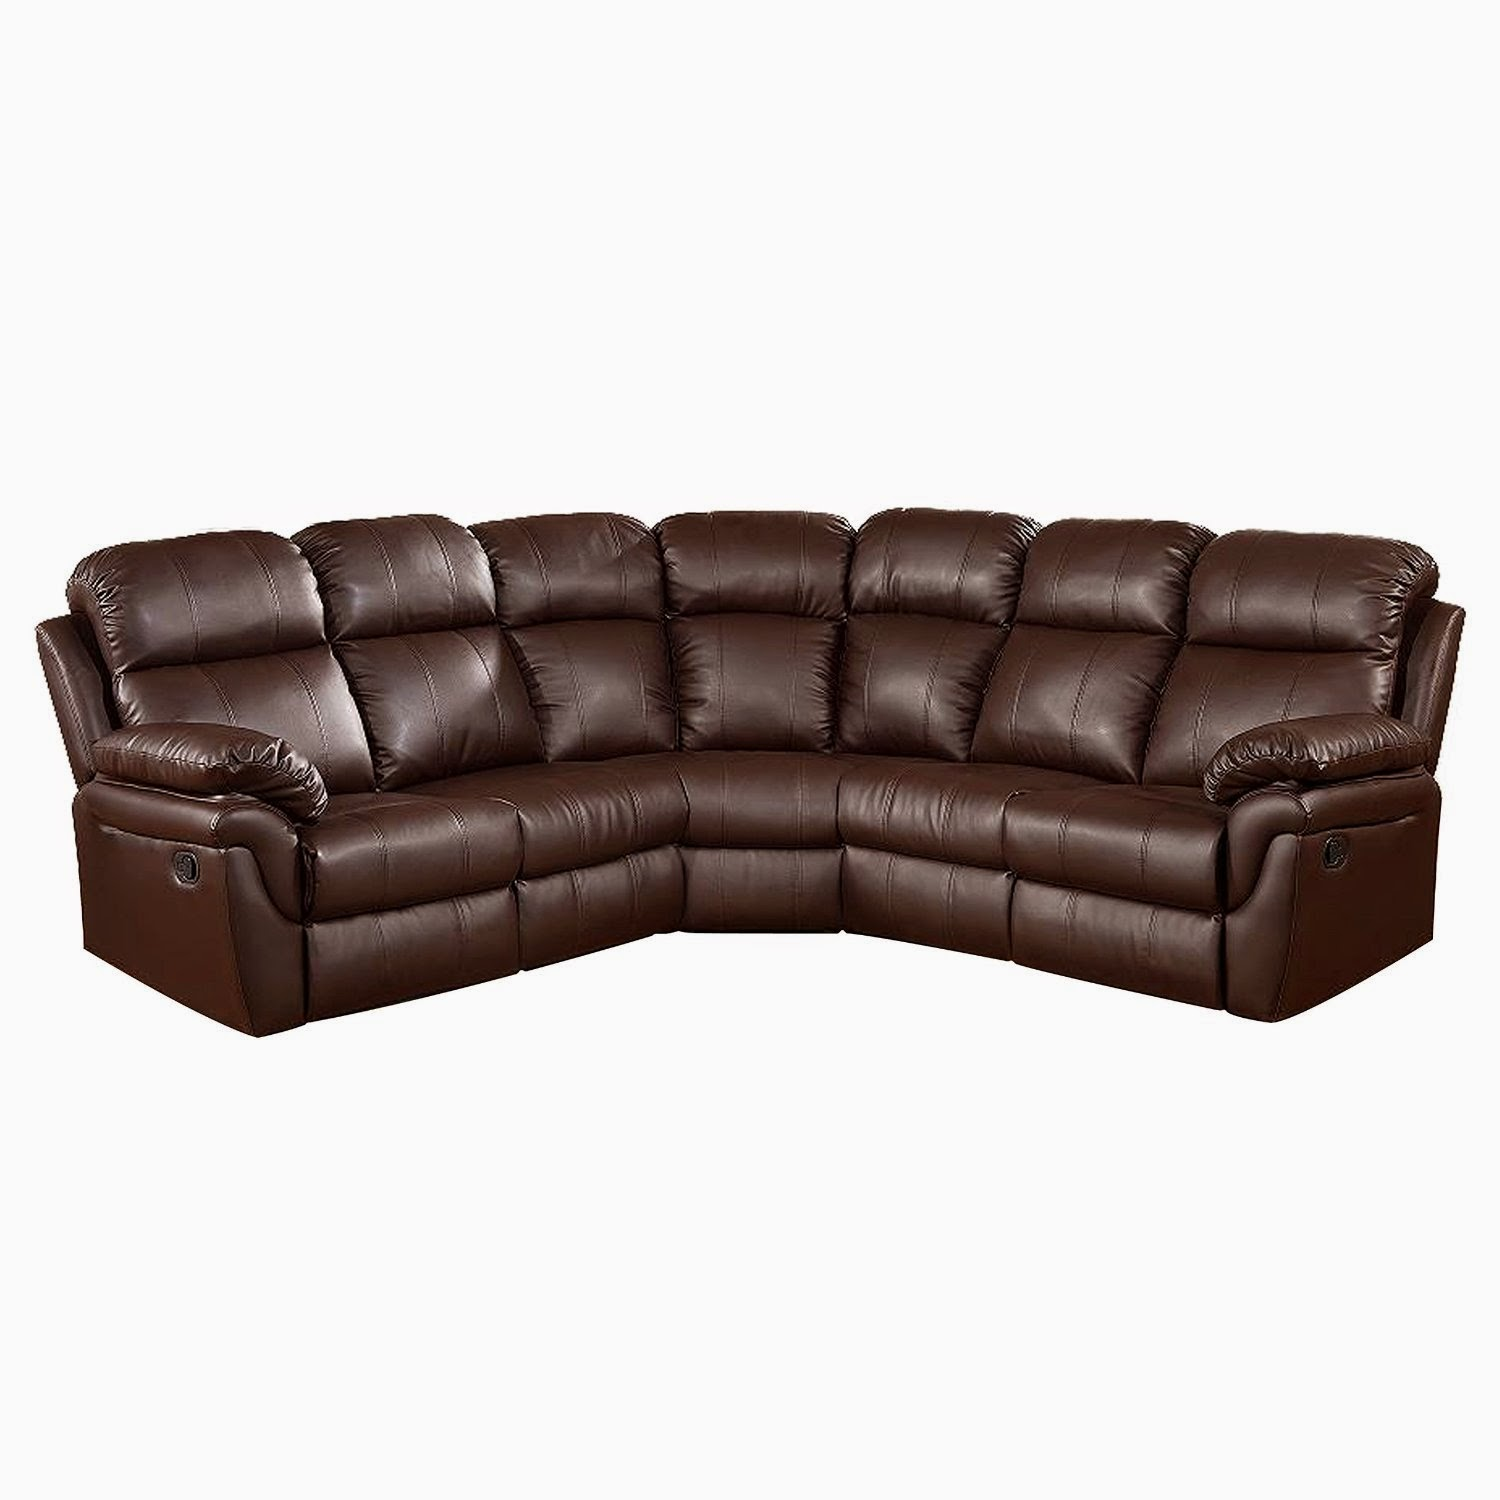 reclinable sectional sofas flexsteel reclining sofa the best reviews